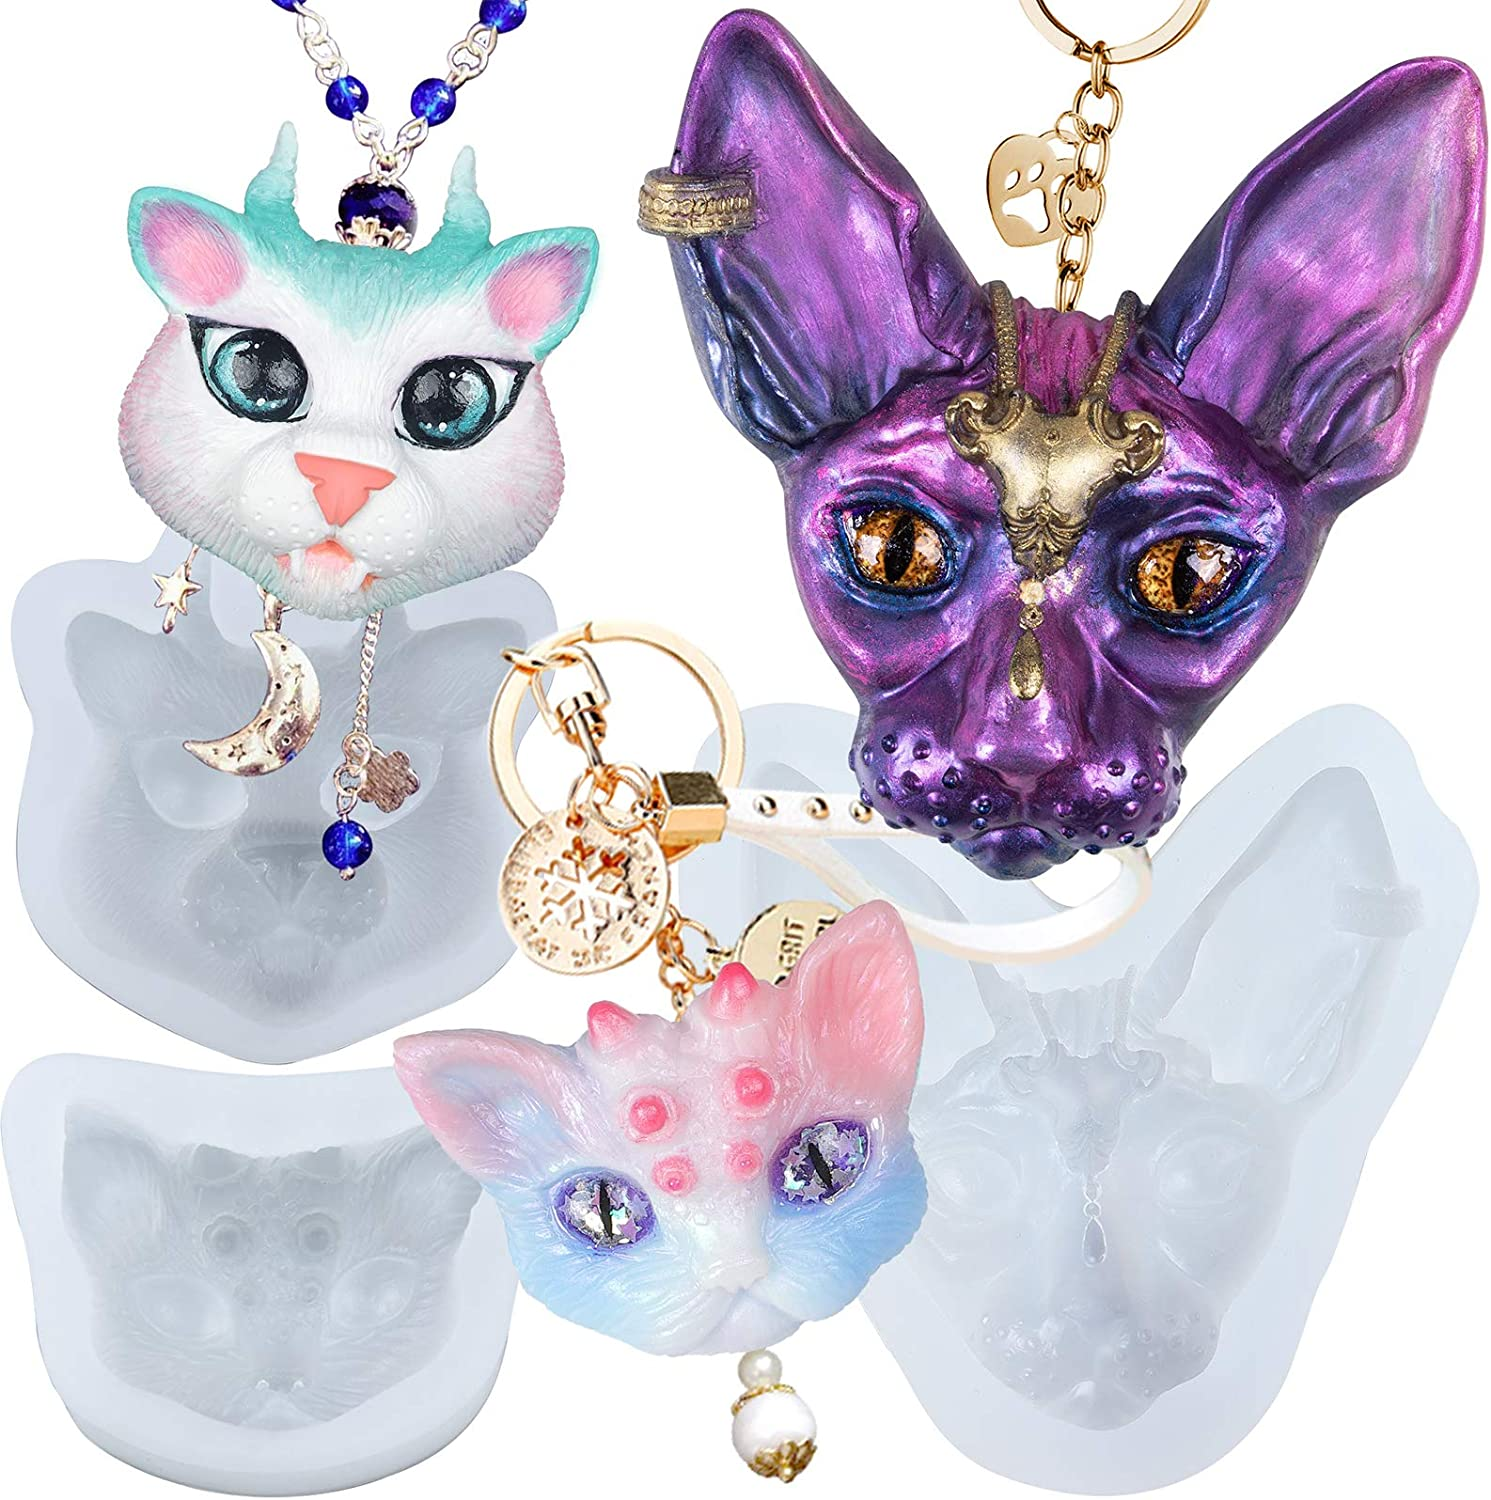 Amazon Com Epoxy Resin Charms Silicone Molds Set Jewelry Casting Supply Sphynx Cat Dragon Kitty Horns Kitten Head Kitchen Dining